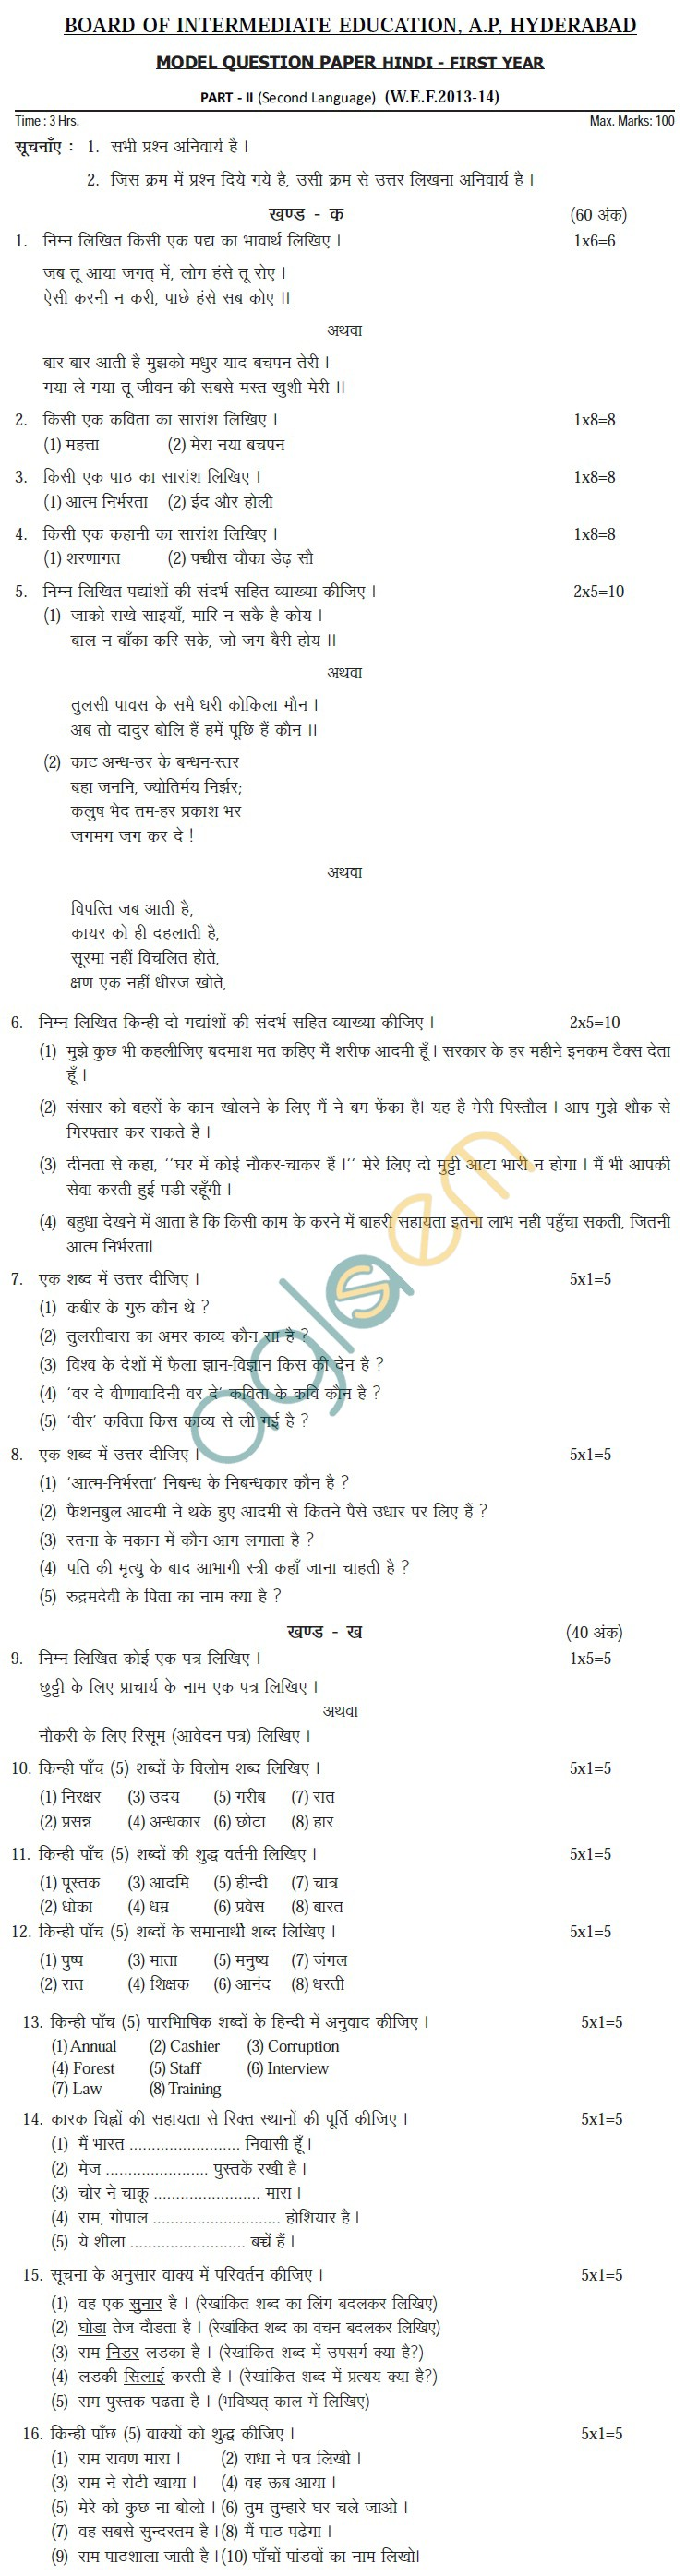 AP Board Intermediate I Year Hindi Model Question Paper